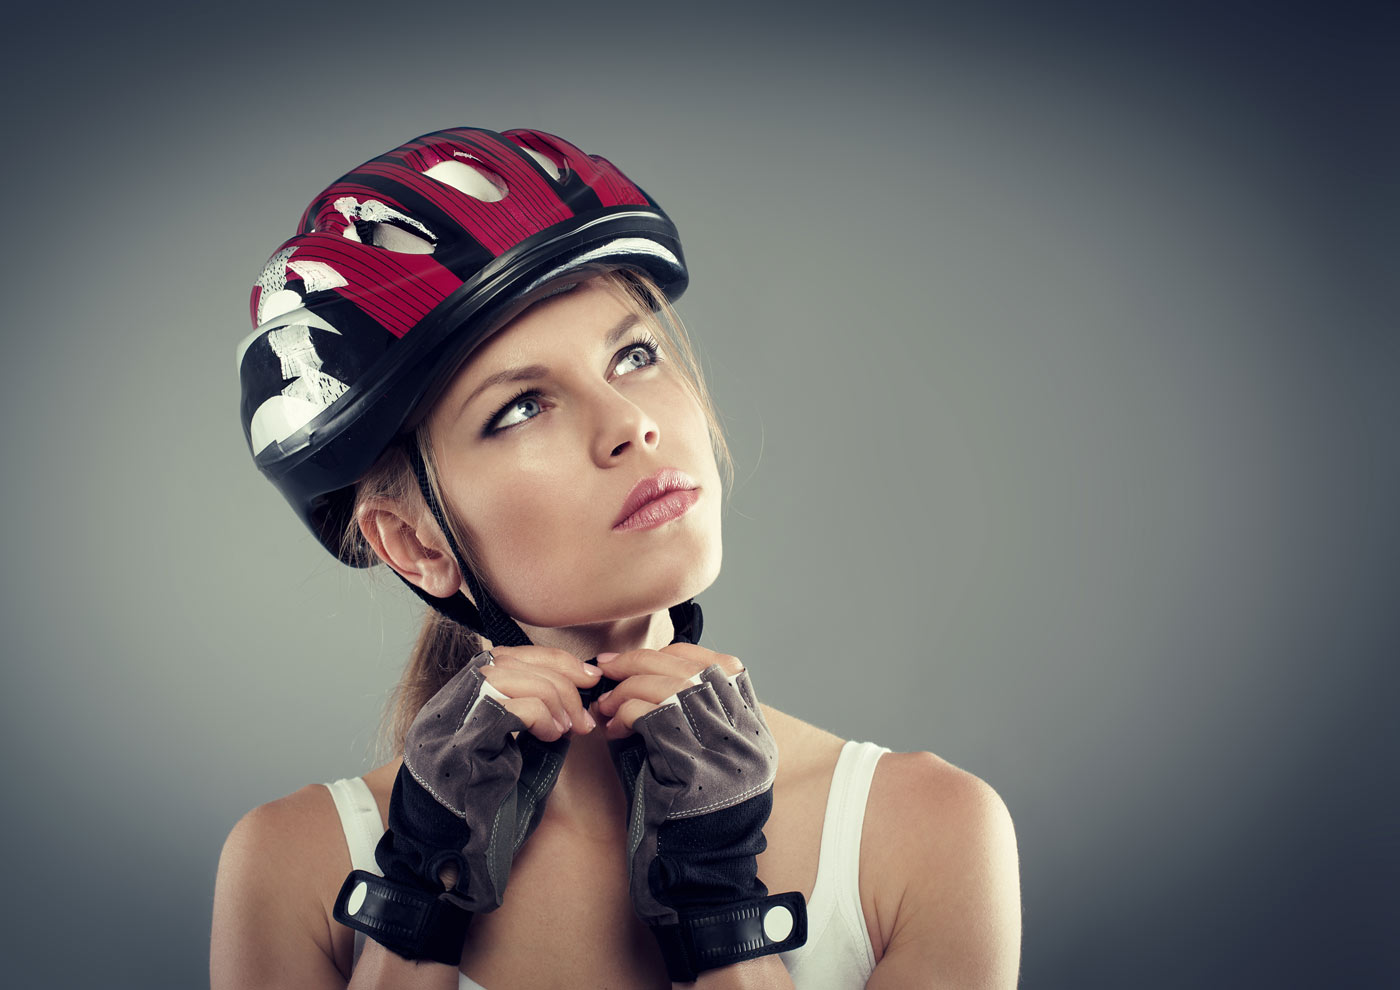 what to wear on bike